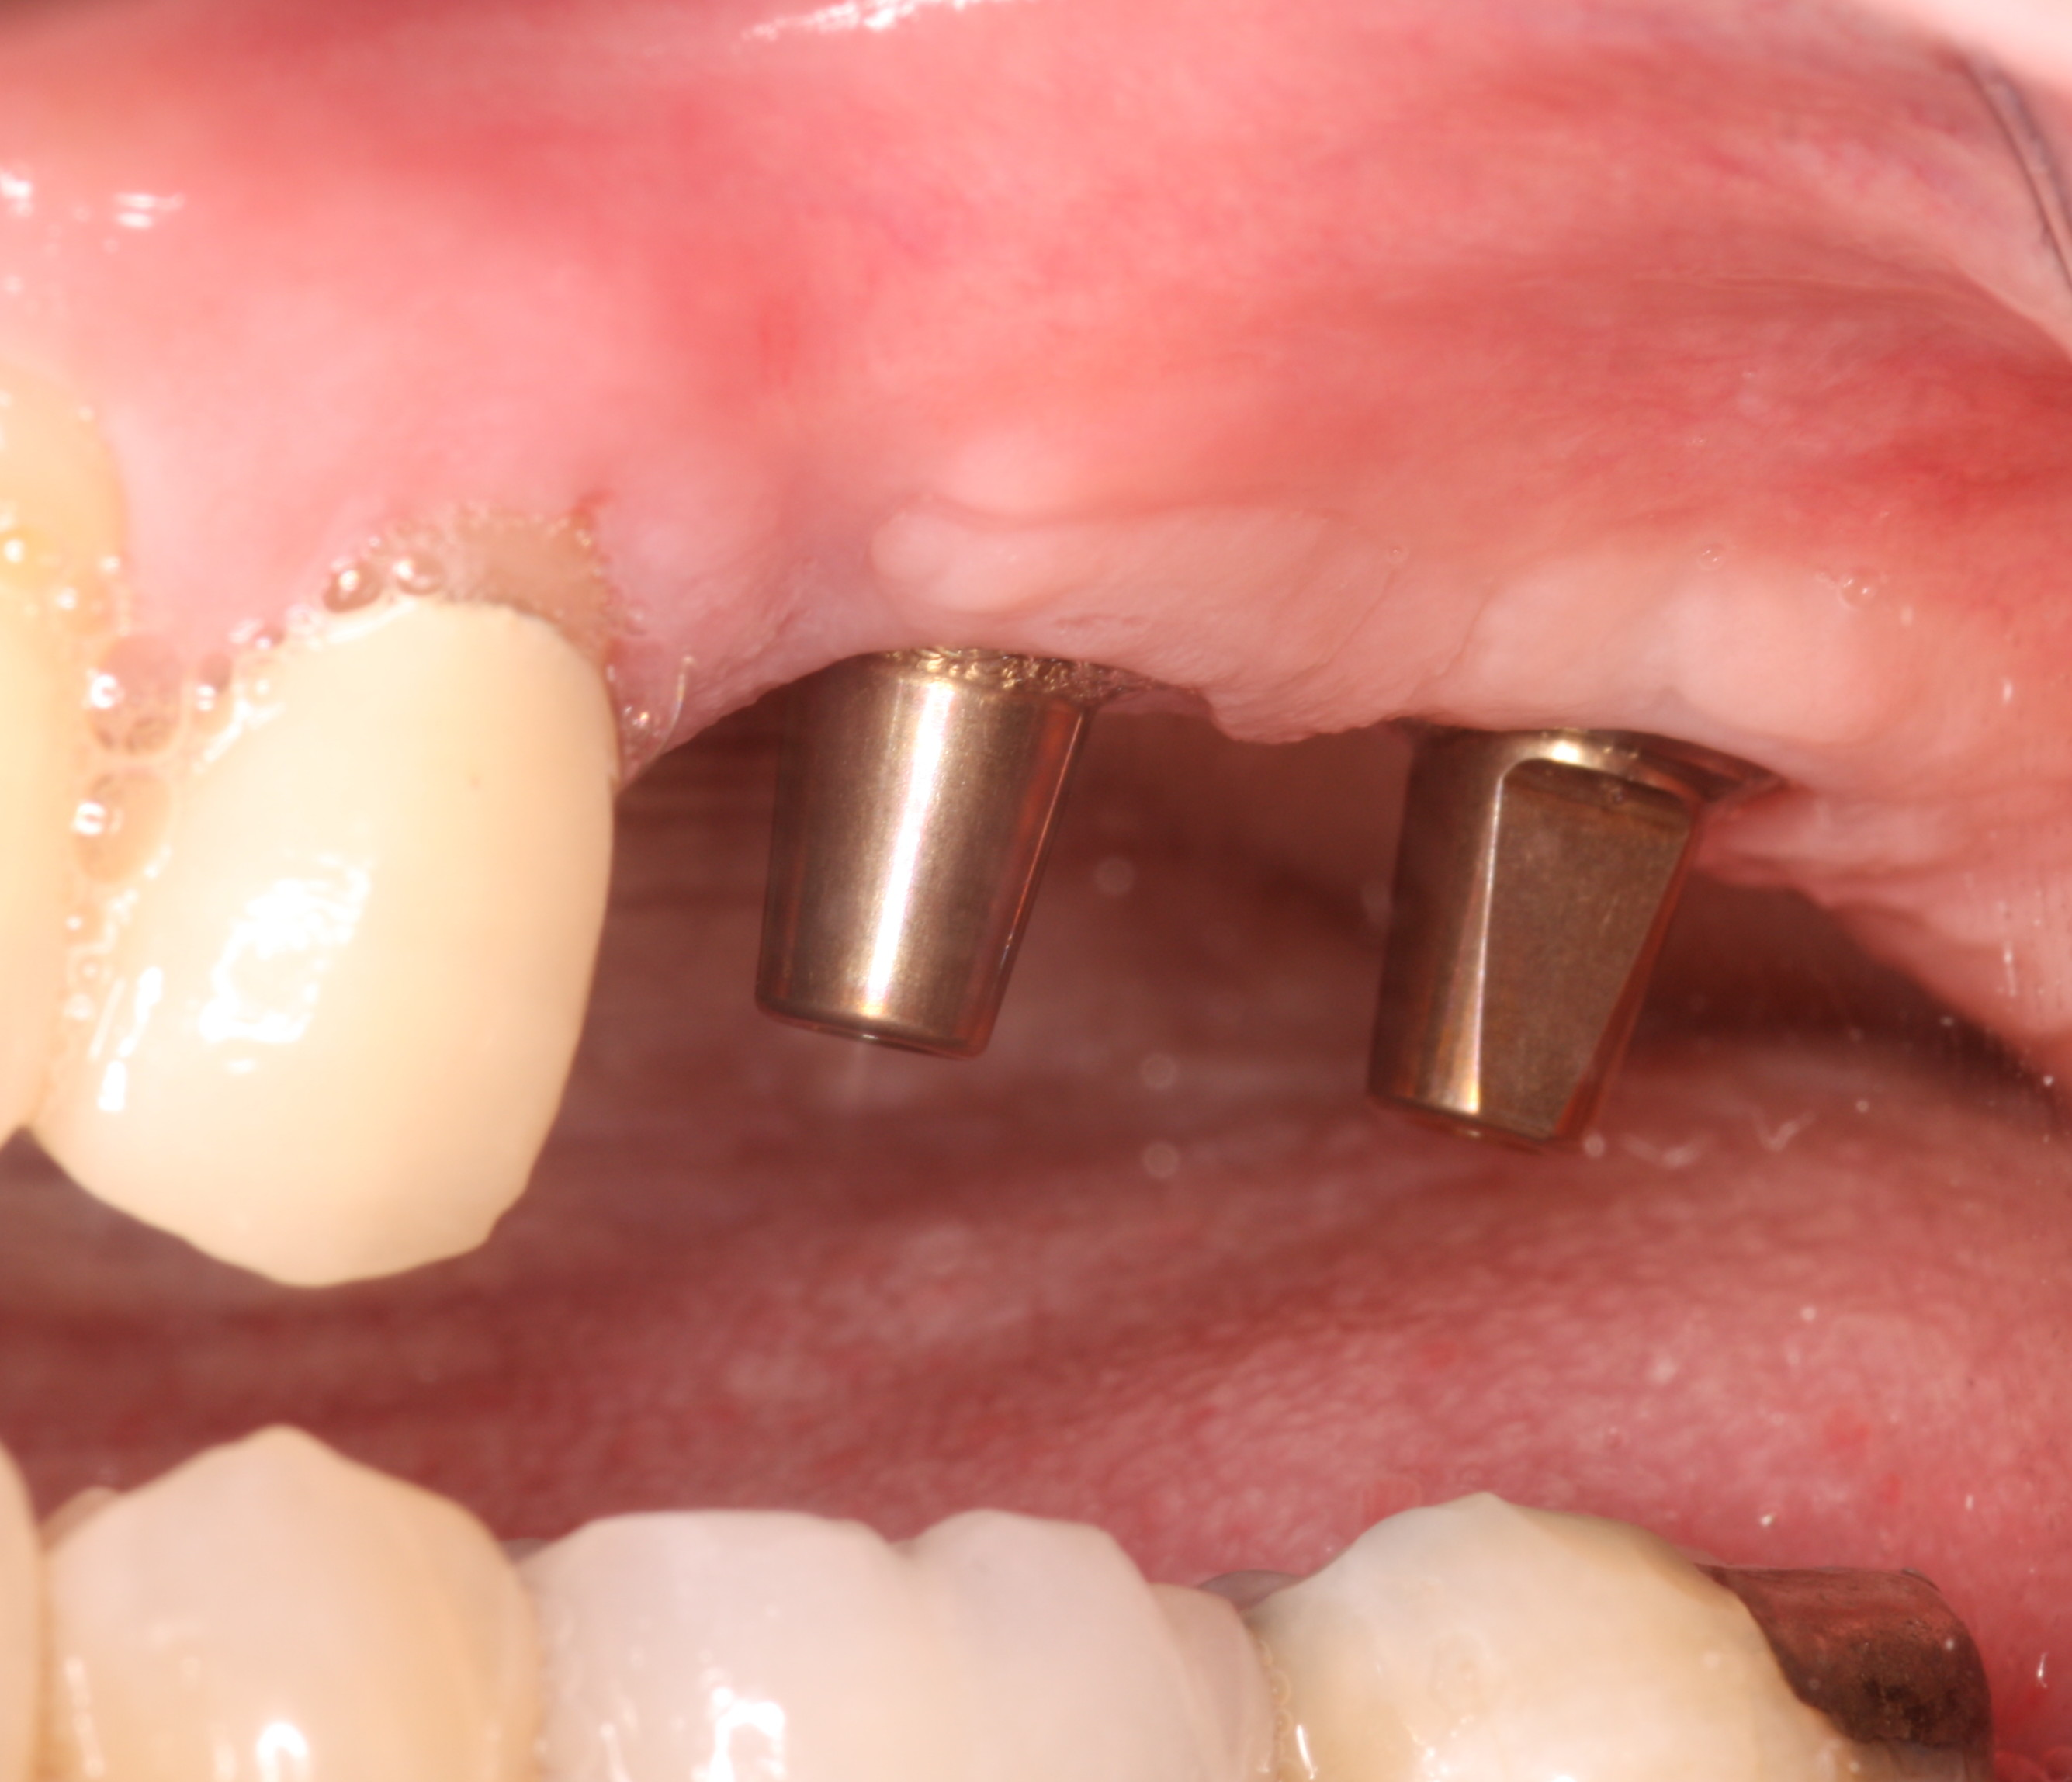 Unrestored dental implants